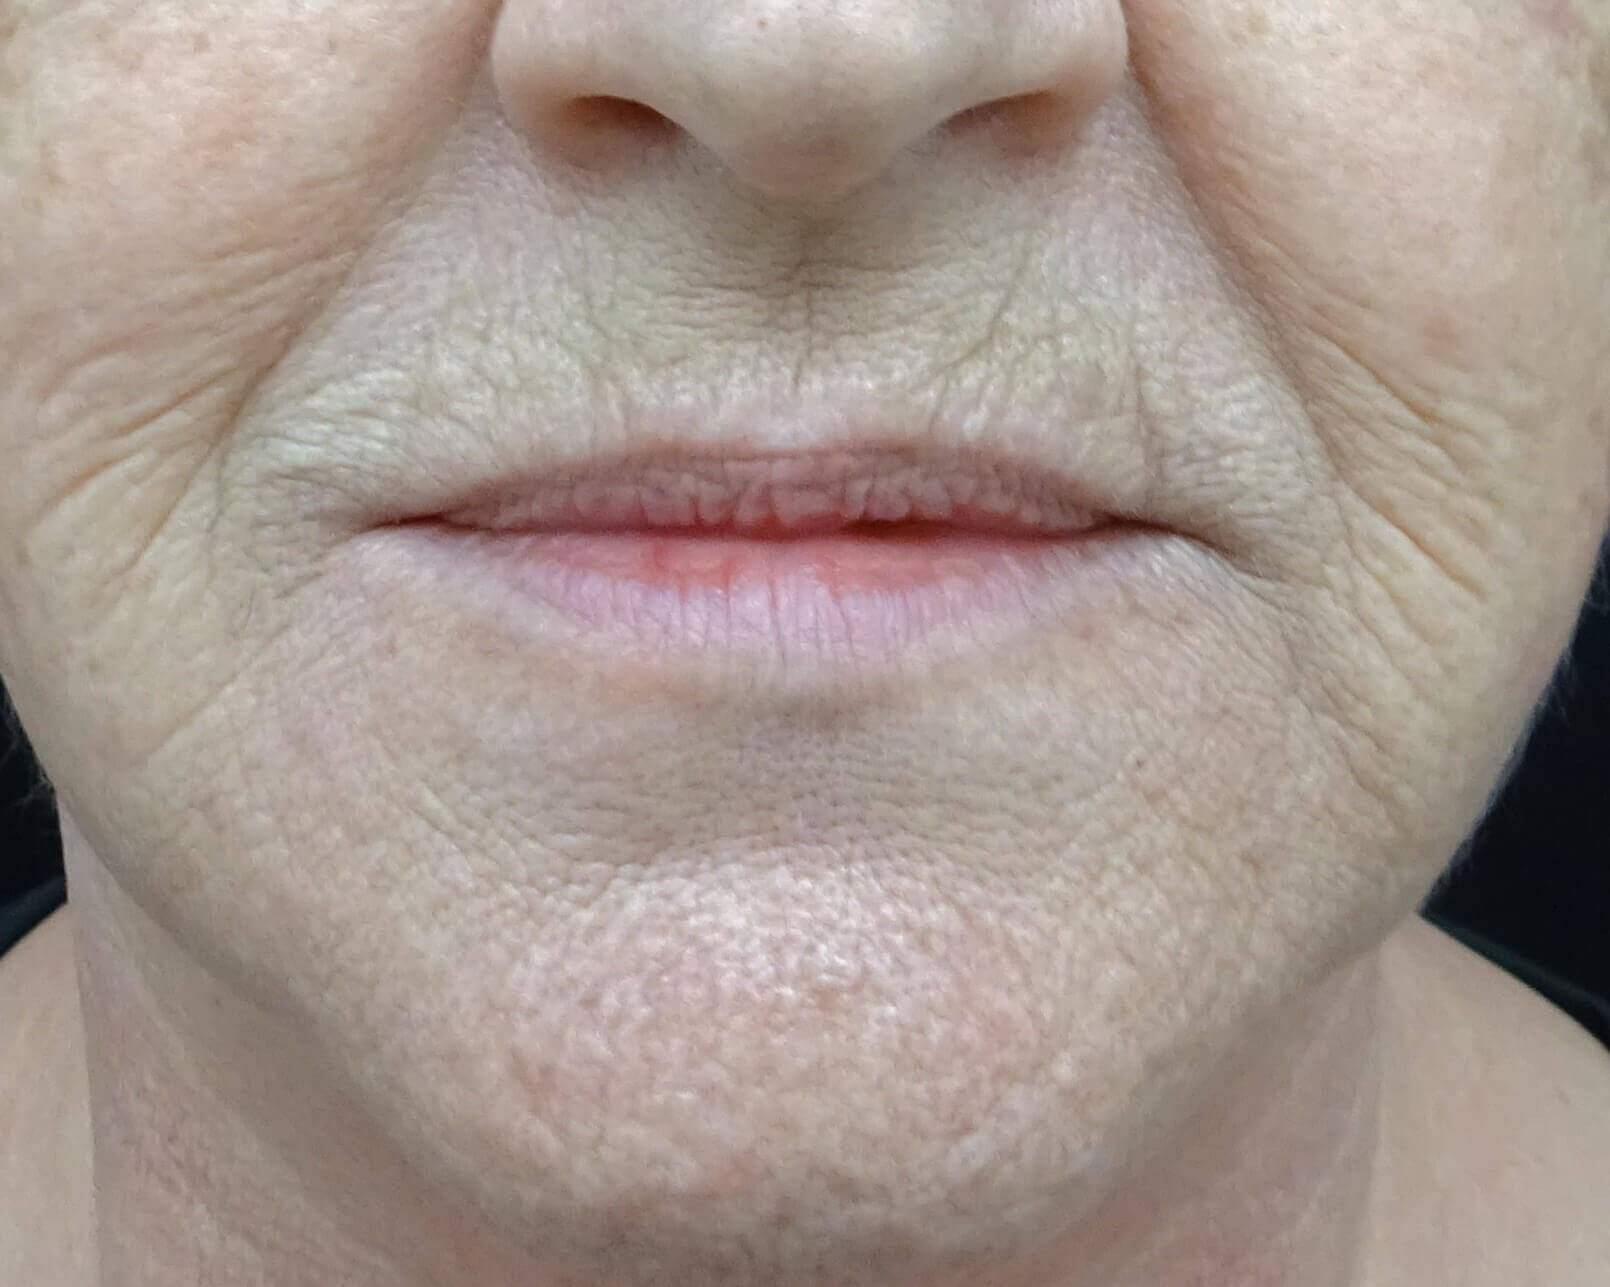 Fuller Lips with Juvederm Lips Before Juvederm UltraPlus